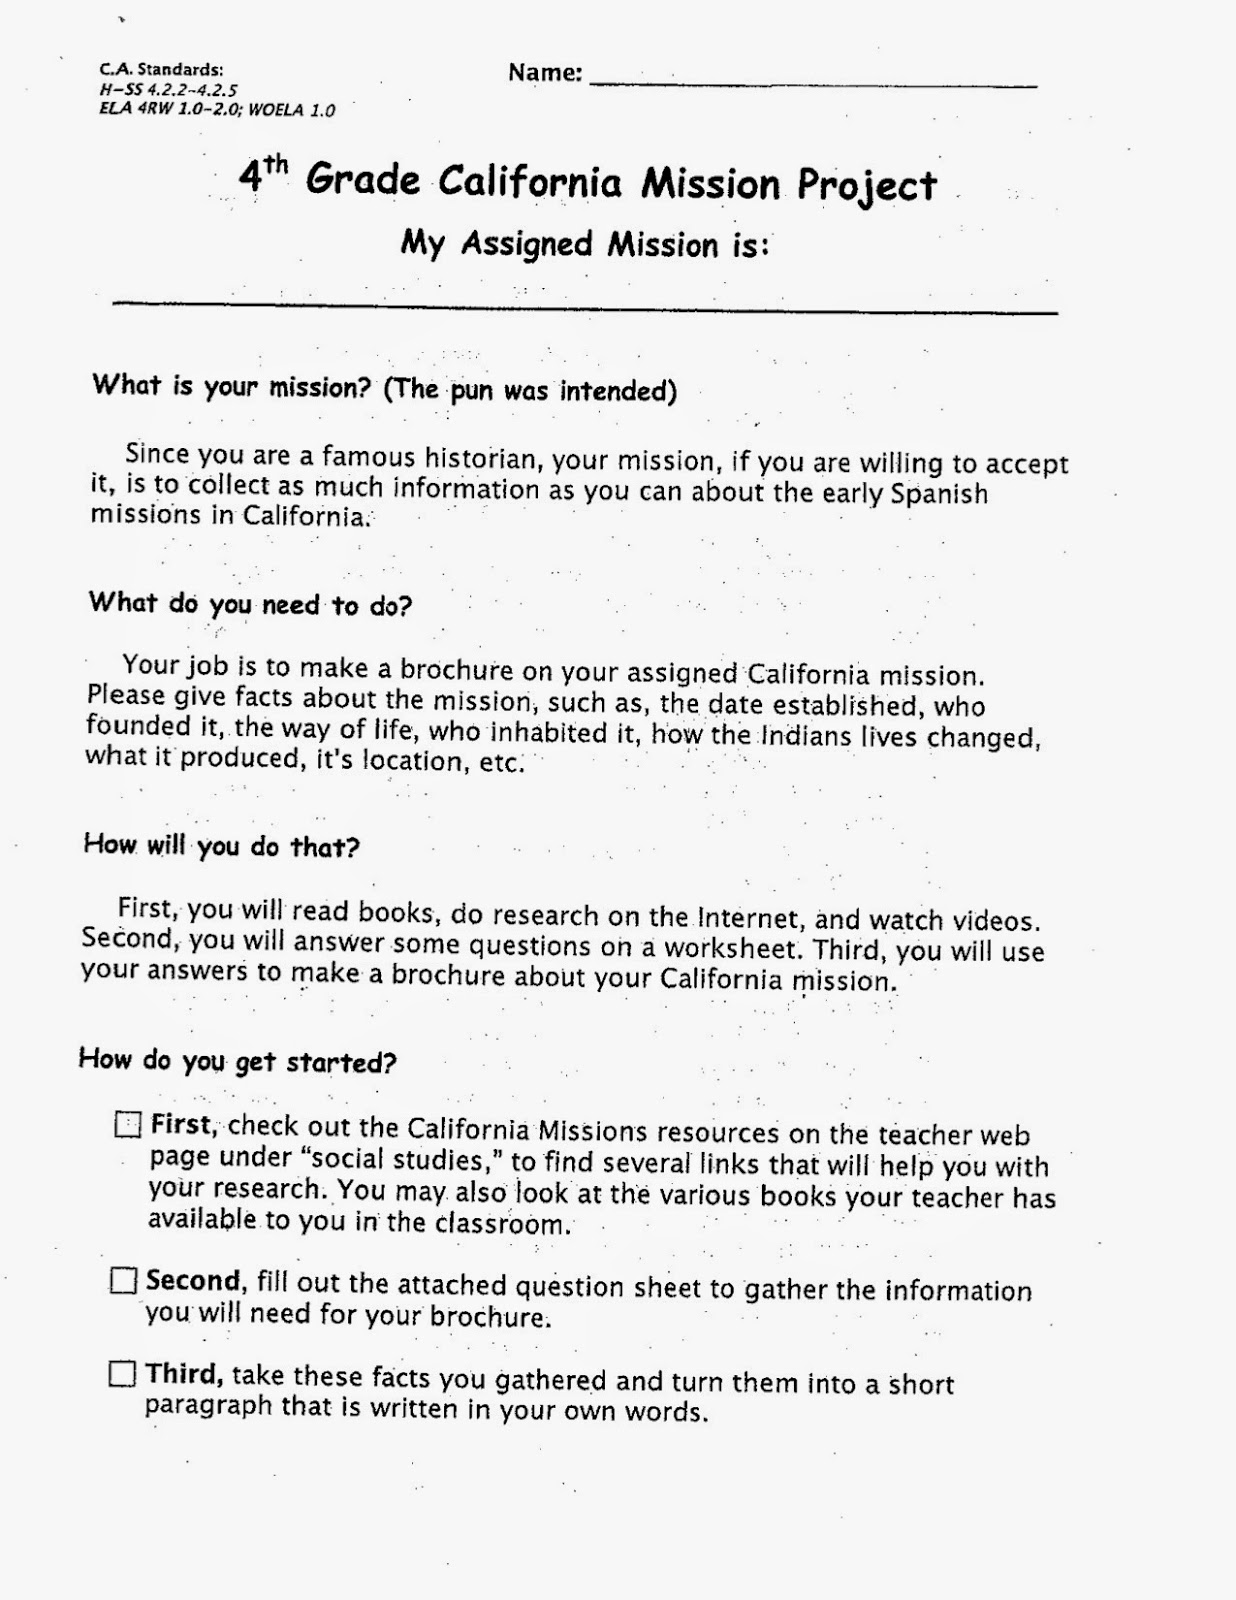 medium resolution of California Missions Worksheets For Kids   Printable Worksheets and  Activities for Teachers